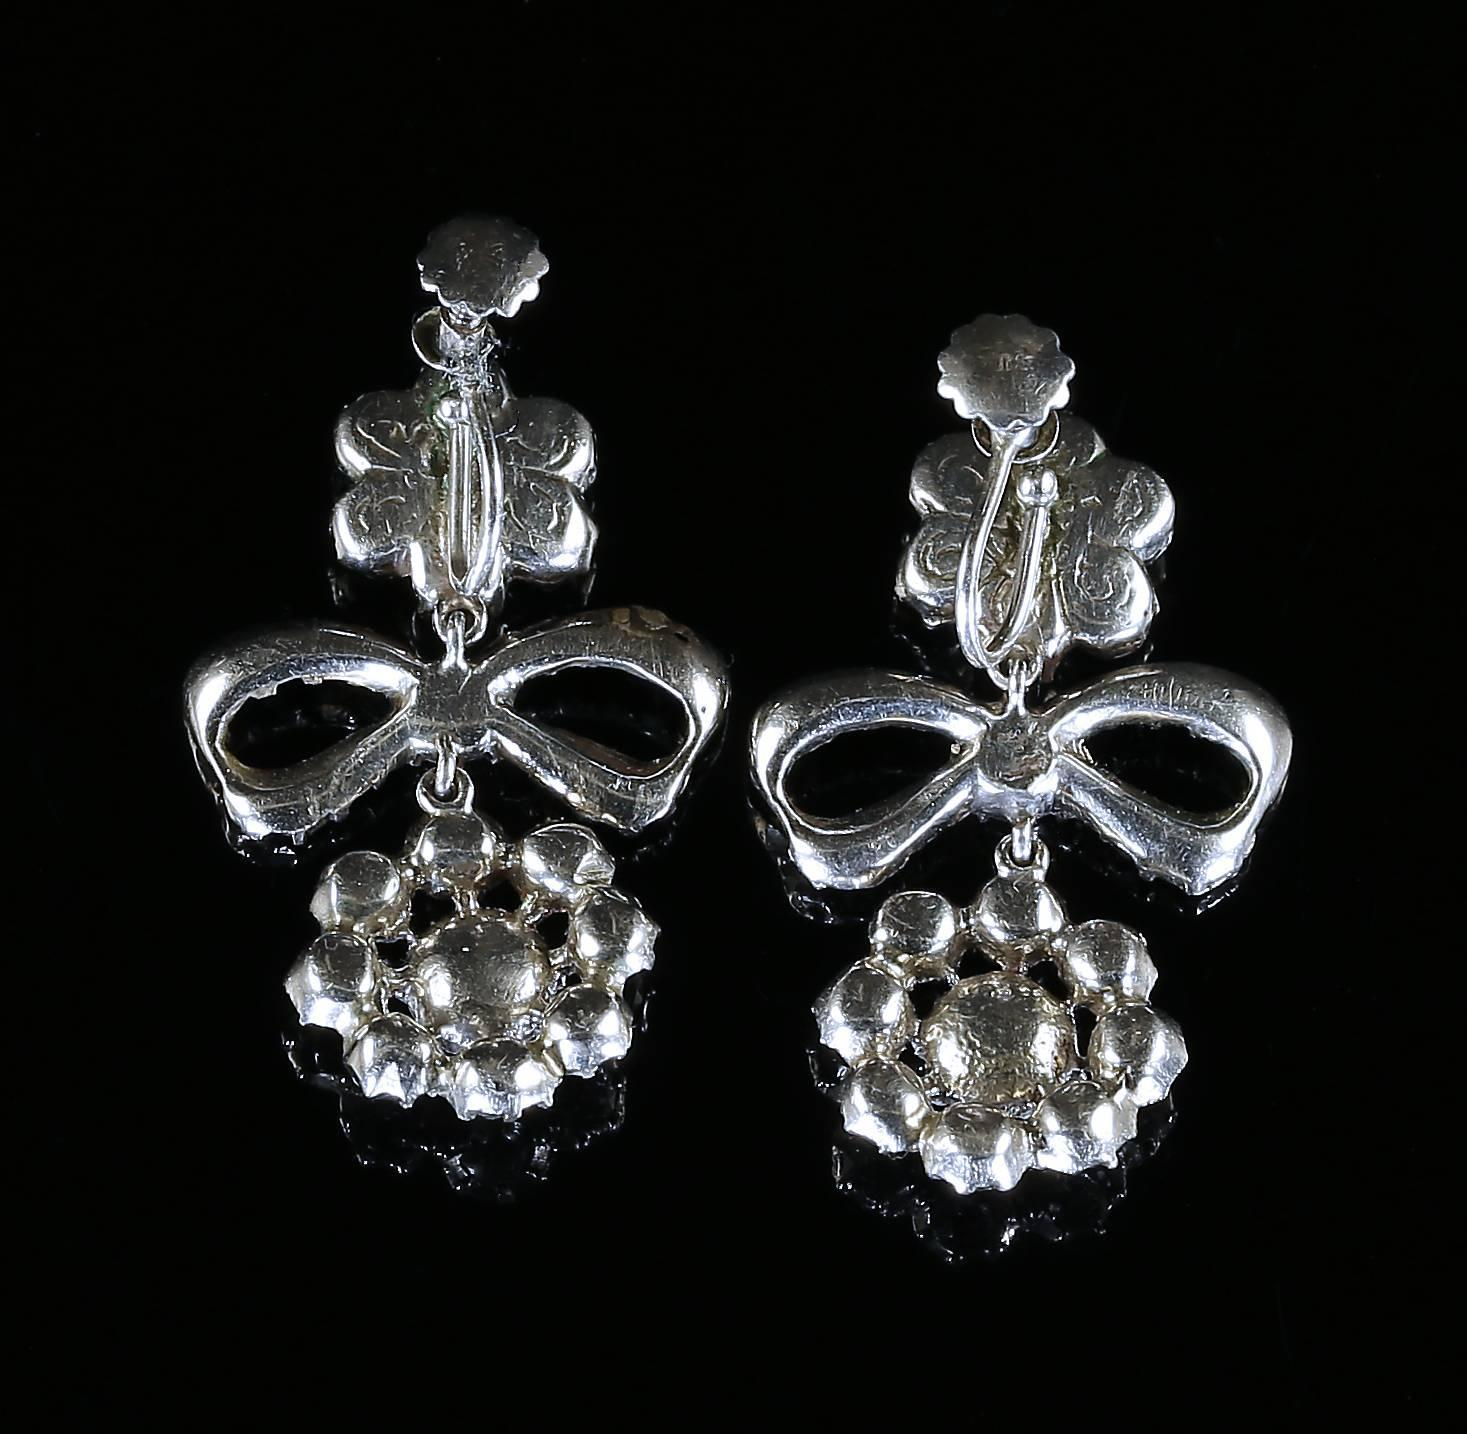 chandelier hourglass dhgate earrings hook silver fish from com ear antique product a jewelry